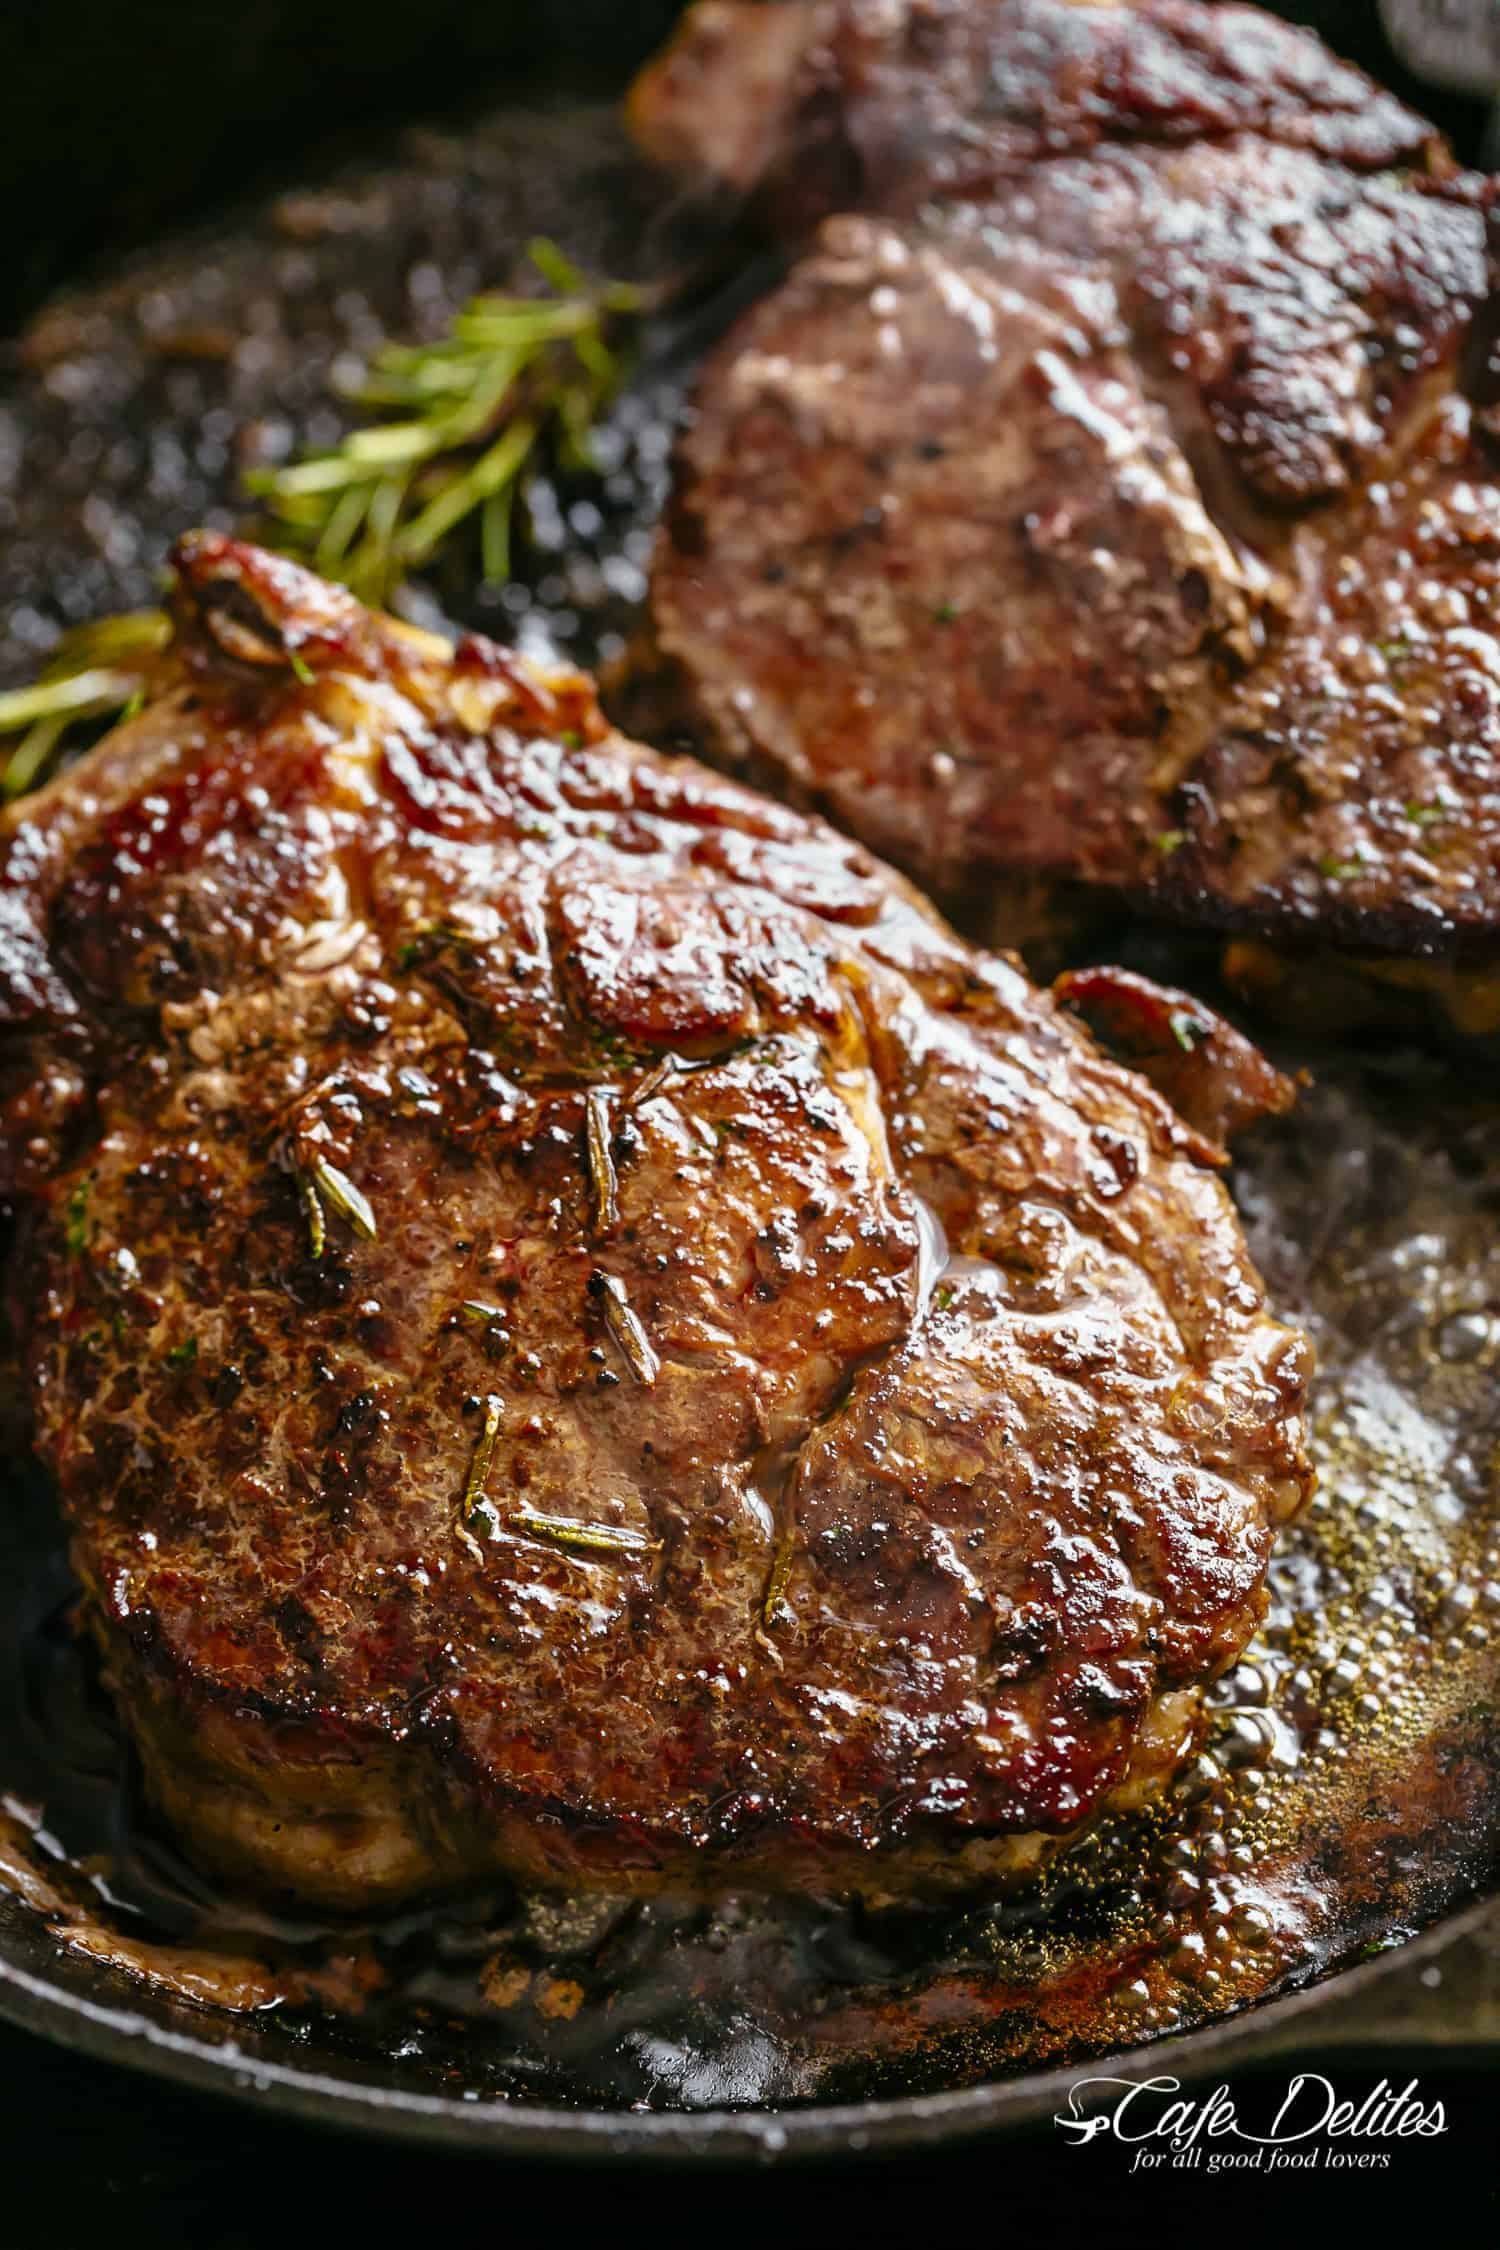 Steakhouse Steak | cafedelites.com